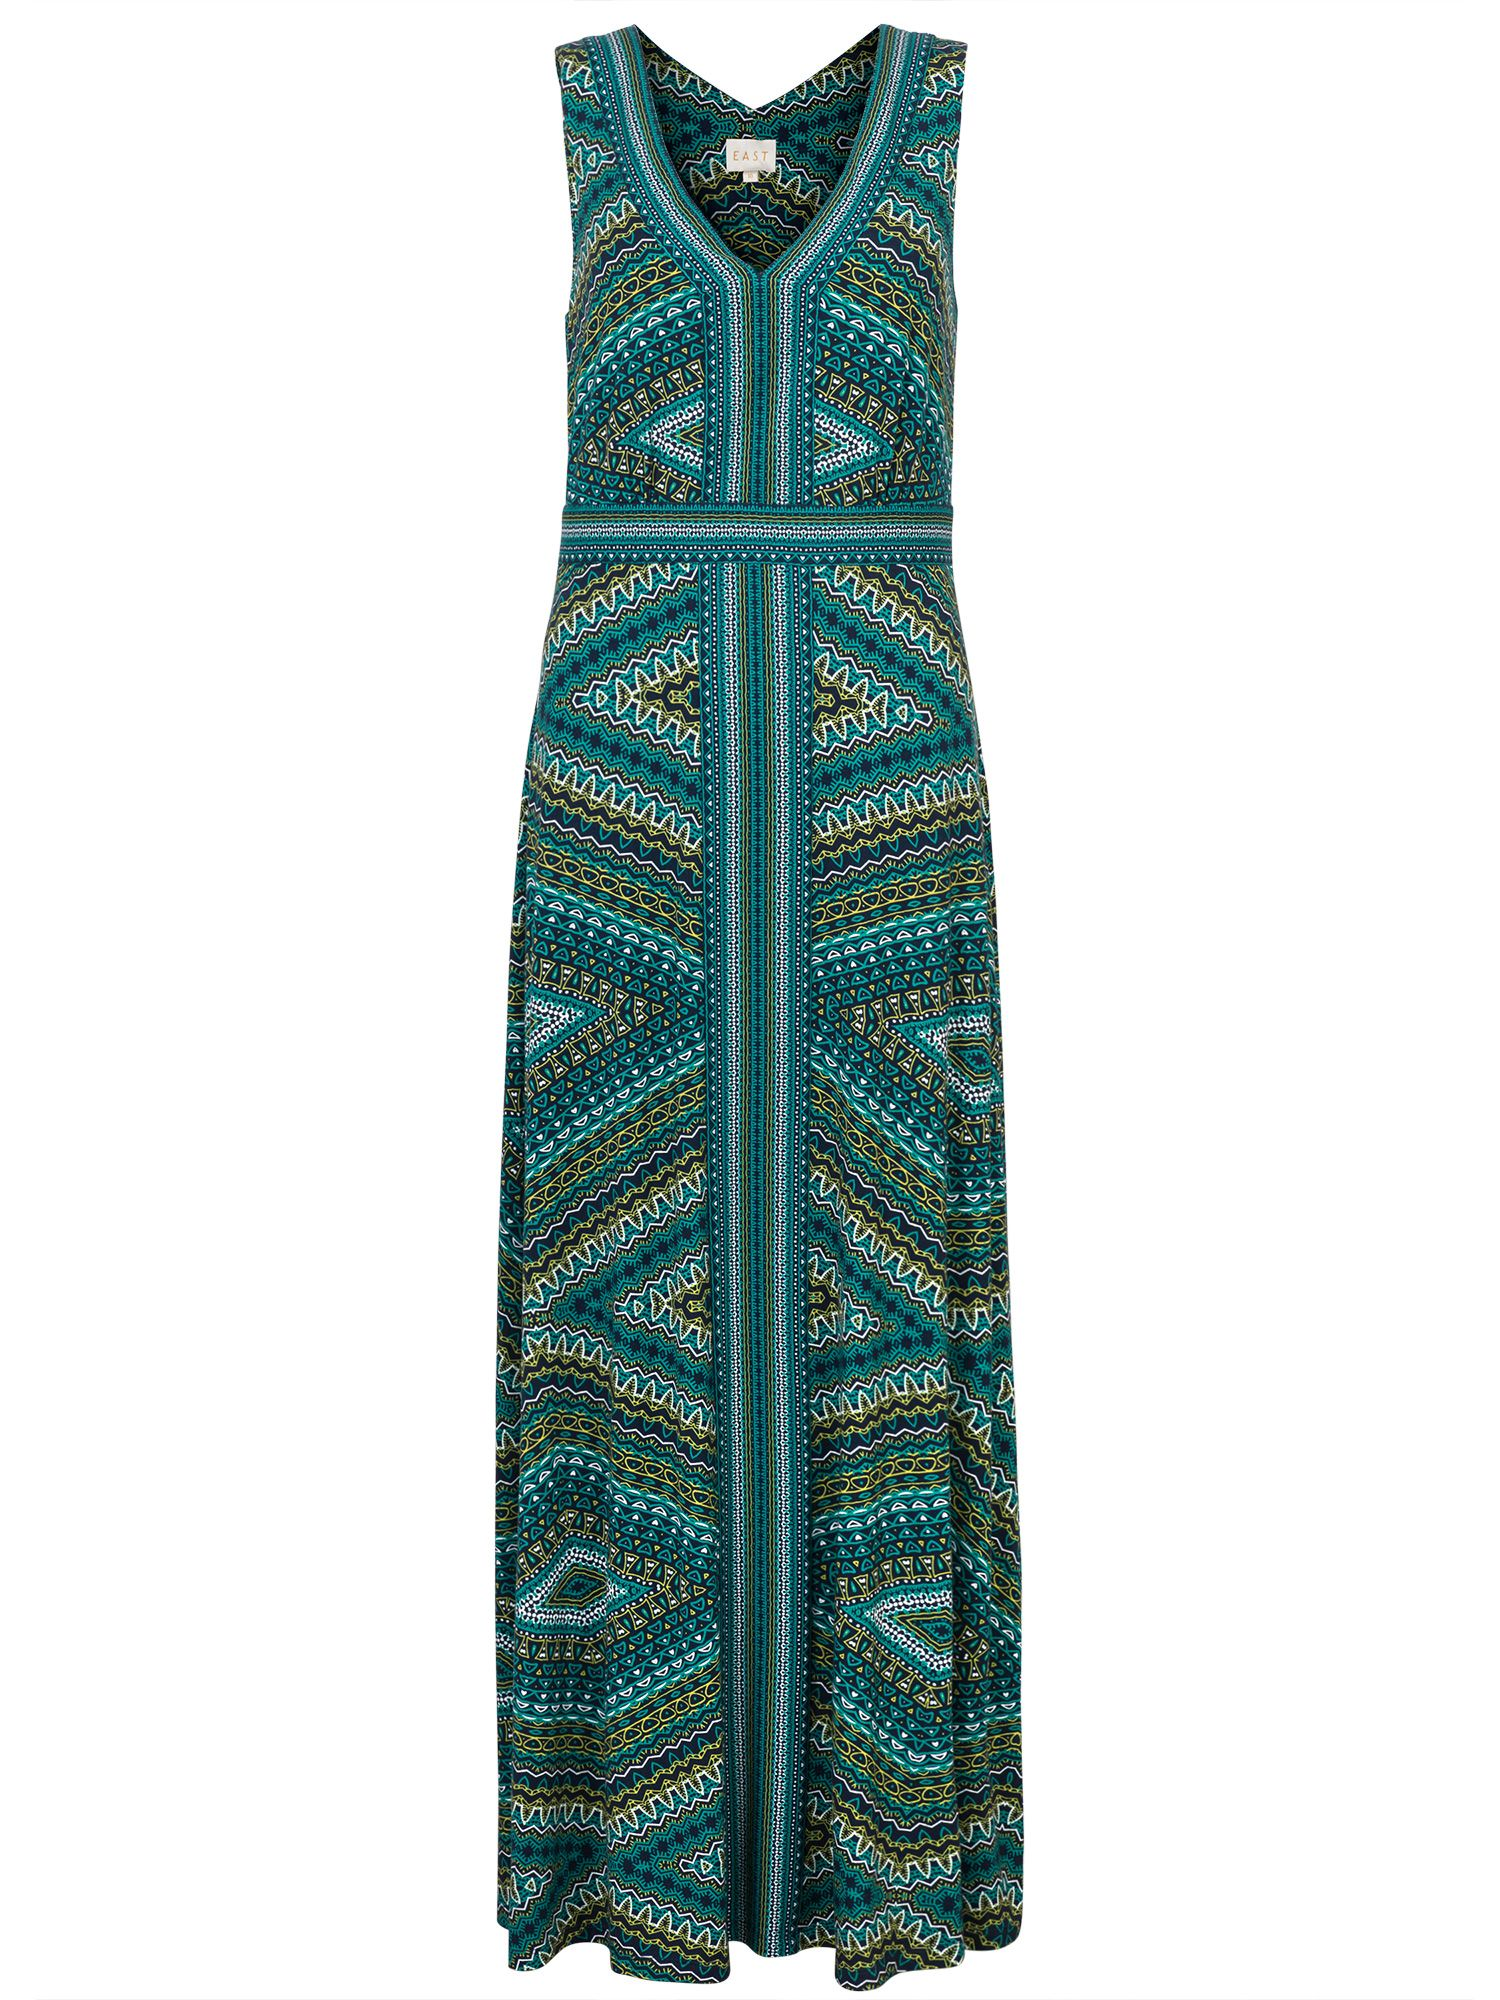 East Savannah Print Maxi Dress, Blue